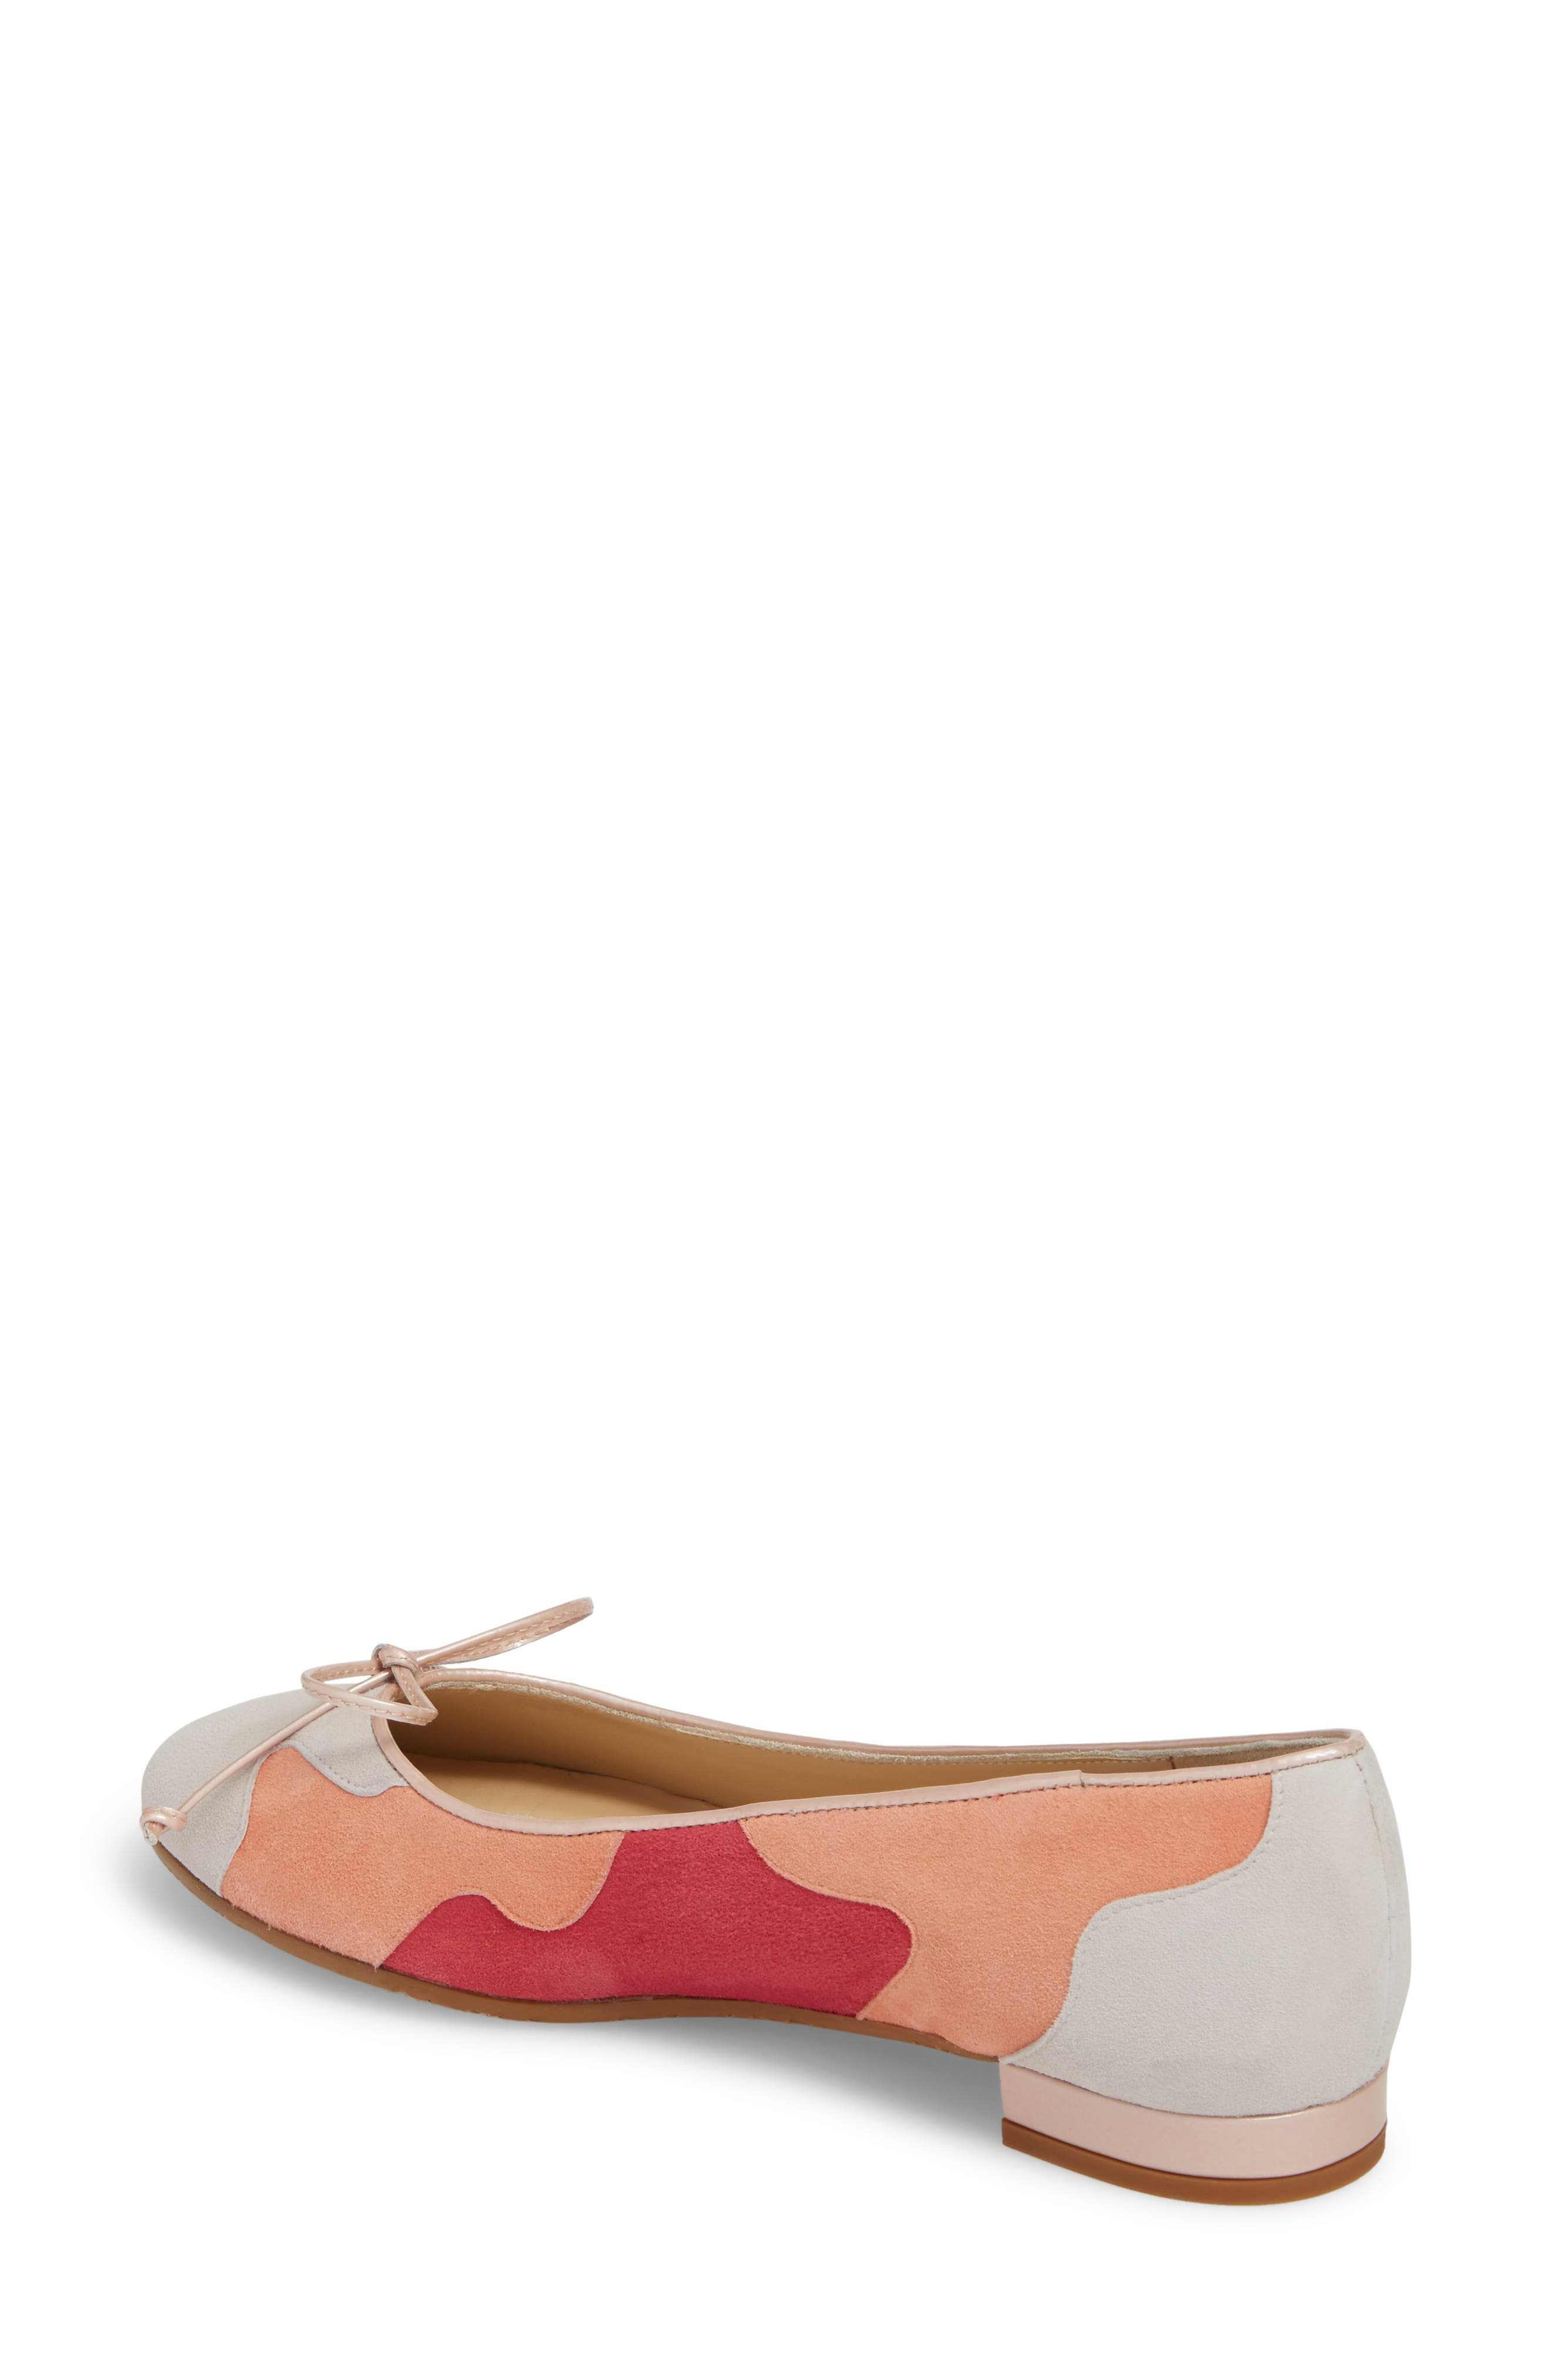 Ginevra Flat,                             Alternate thumbnail 2, color,                             BEIGE SUEDE